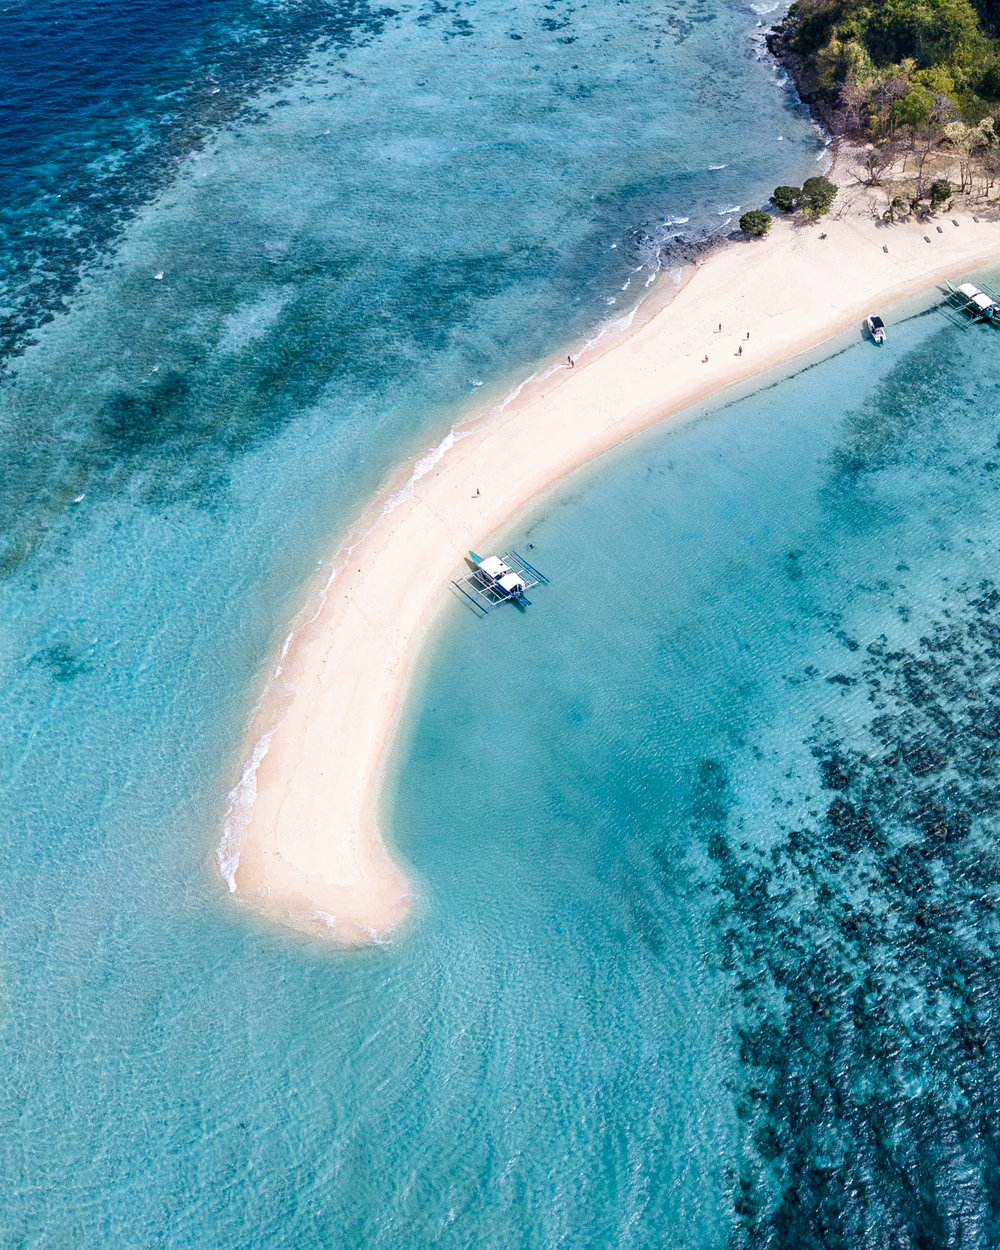 The epic sandbar at Ditaytayan Island